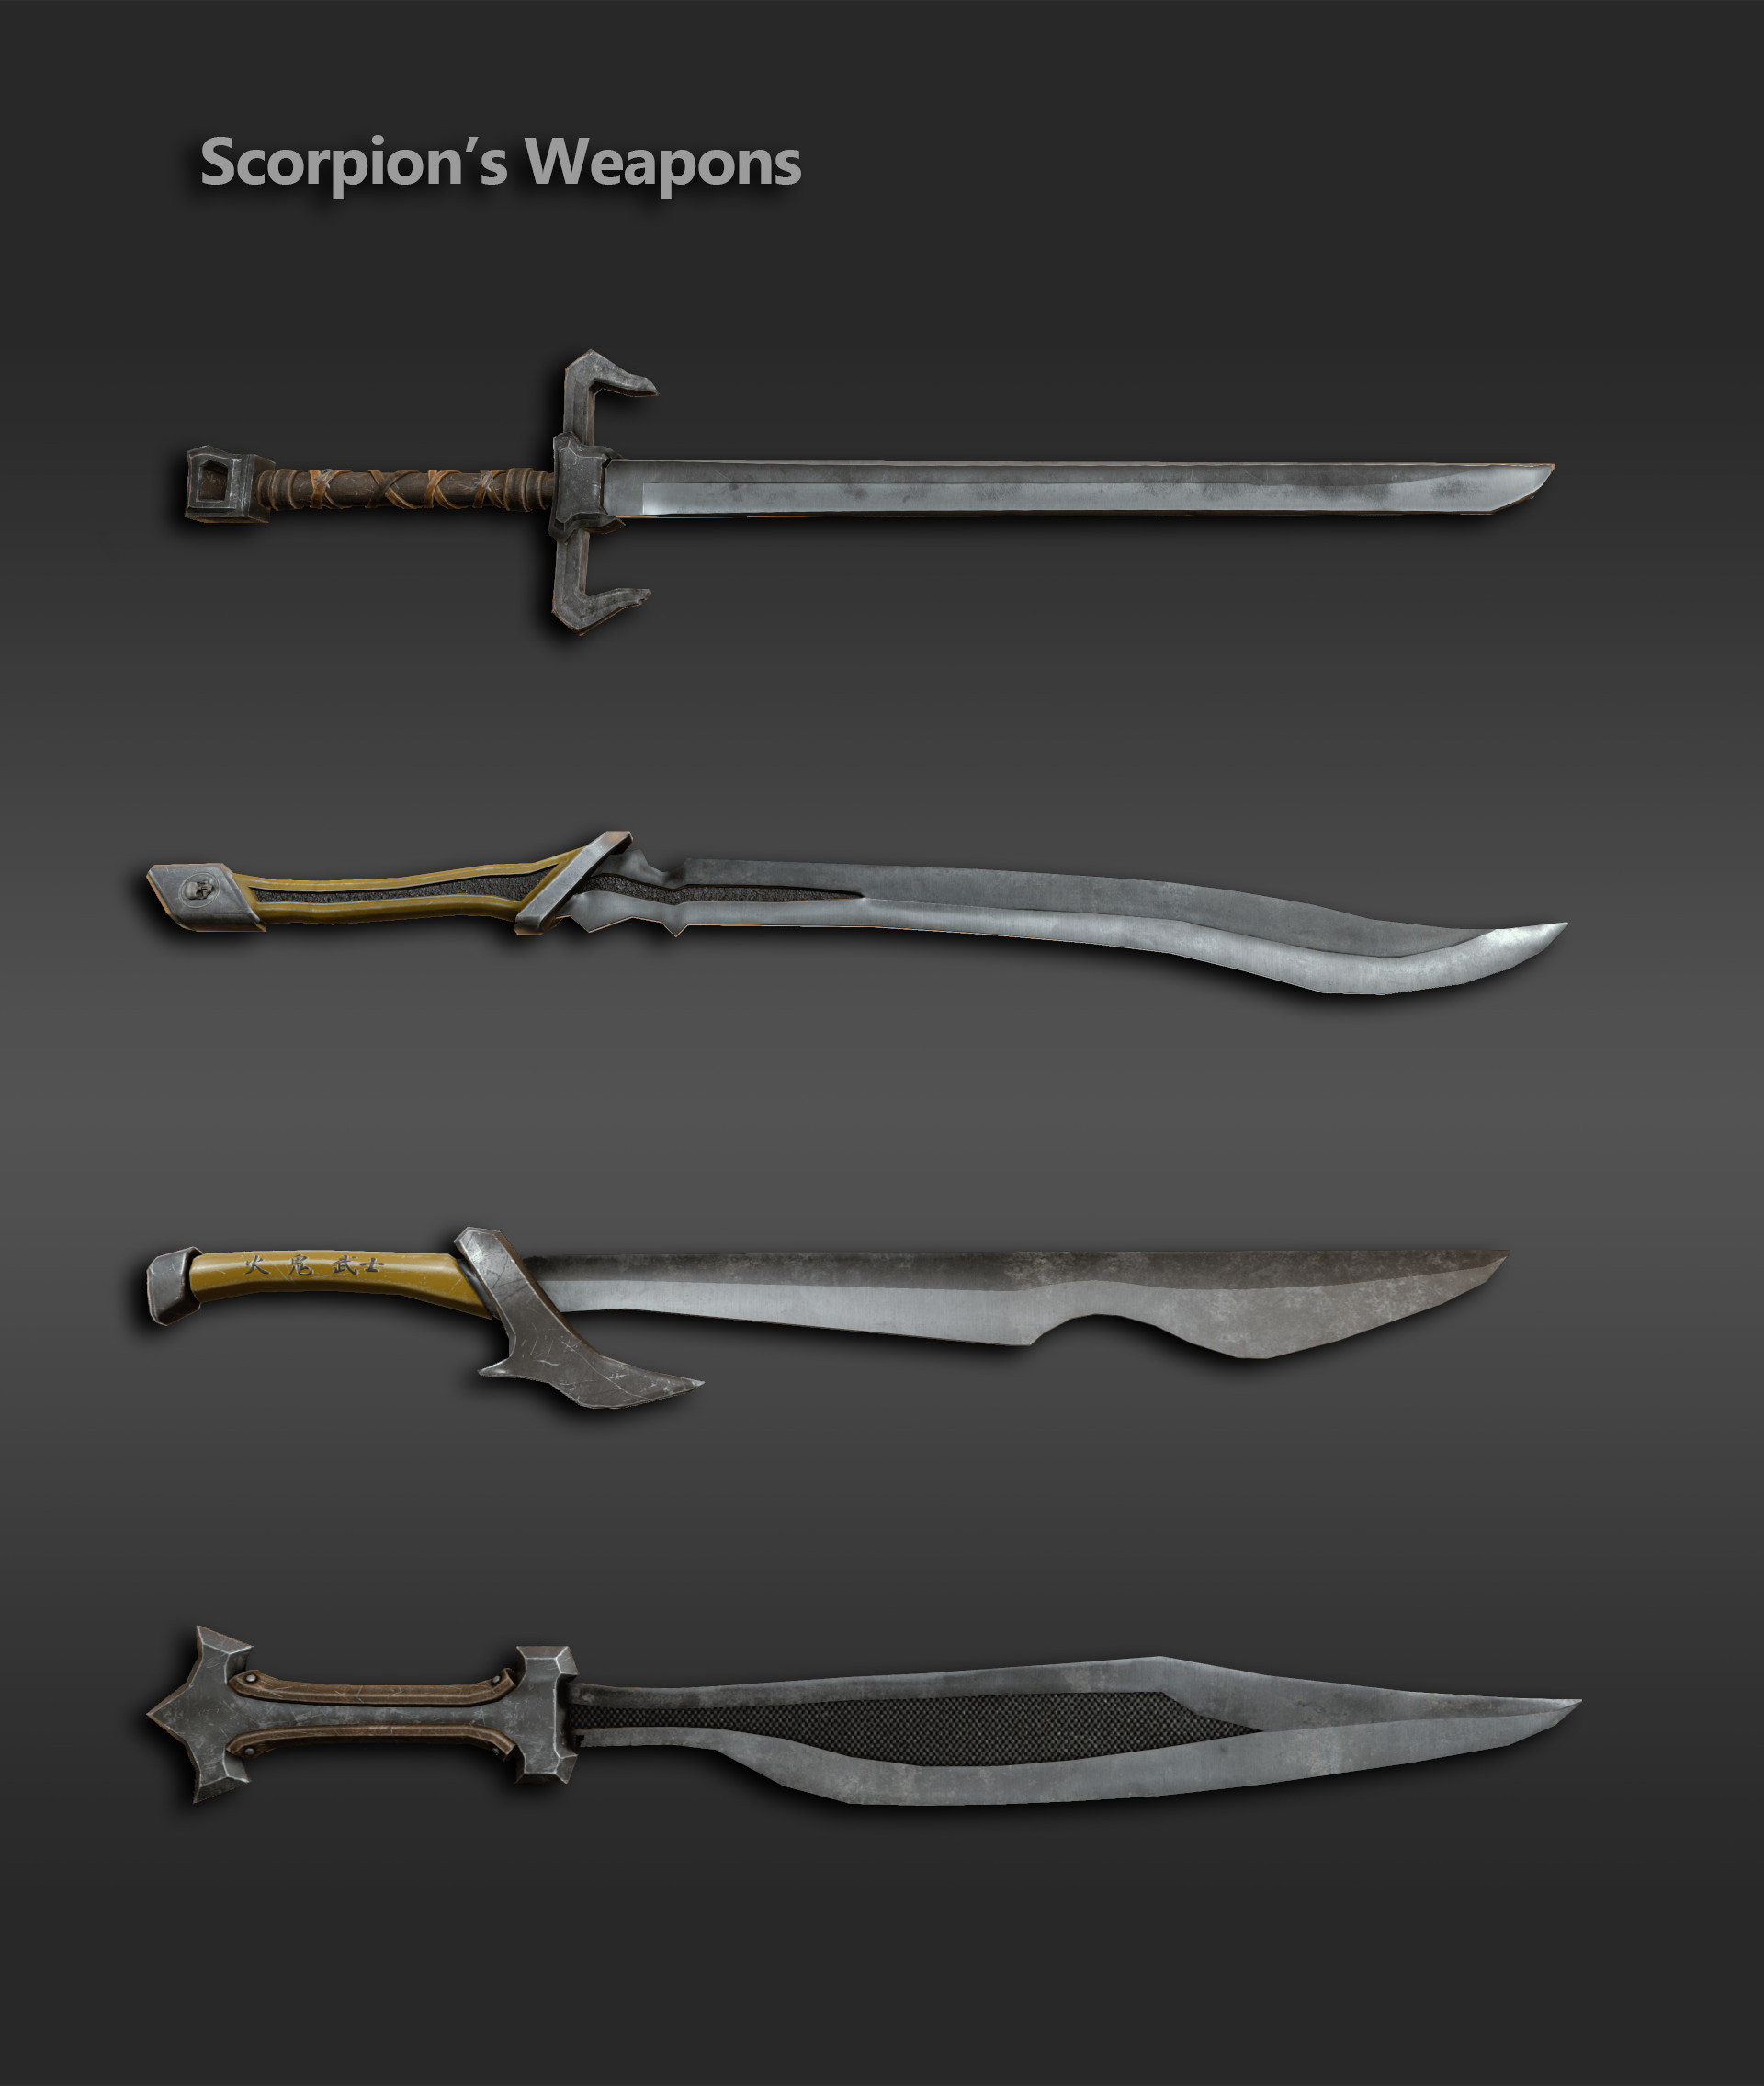 ArtStation - Scorpion's Weapons, Christopher Schroeder